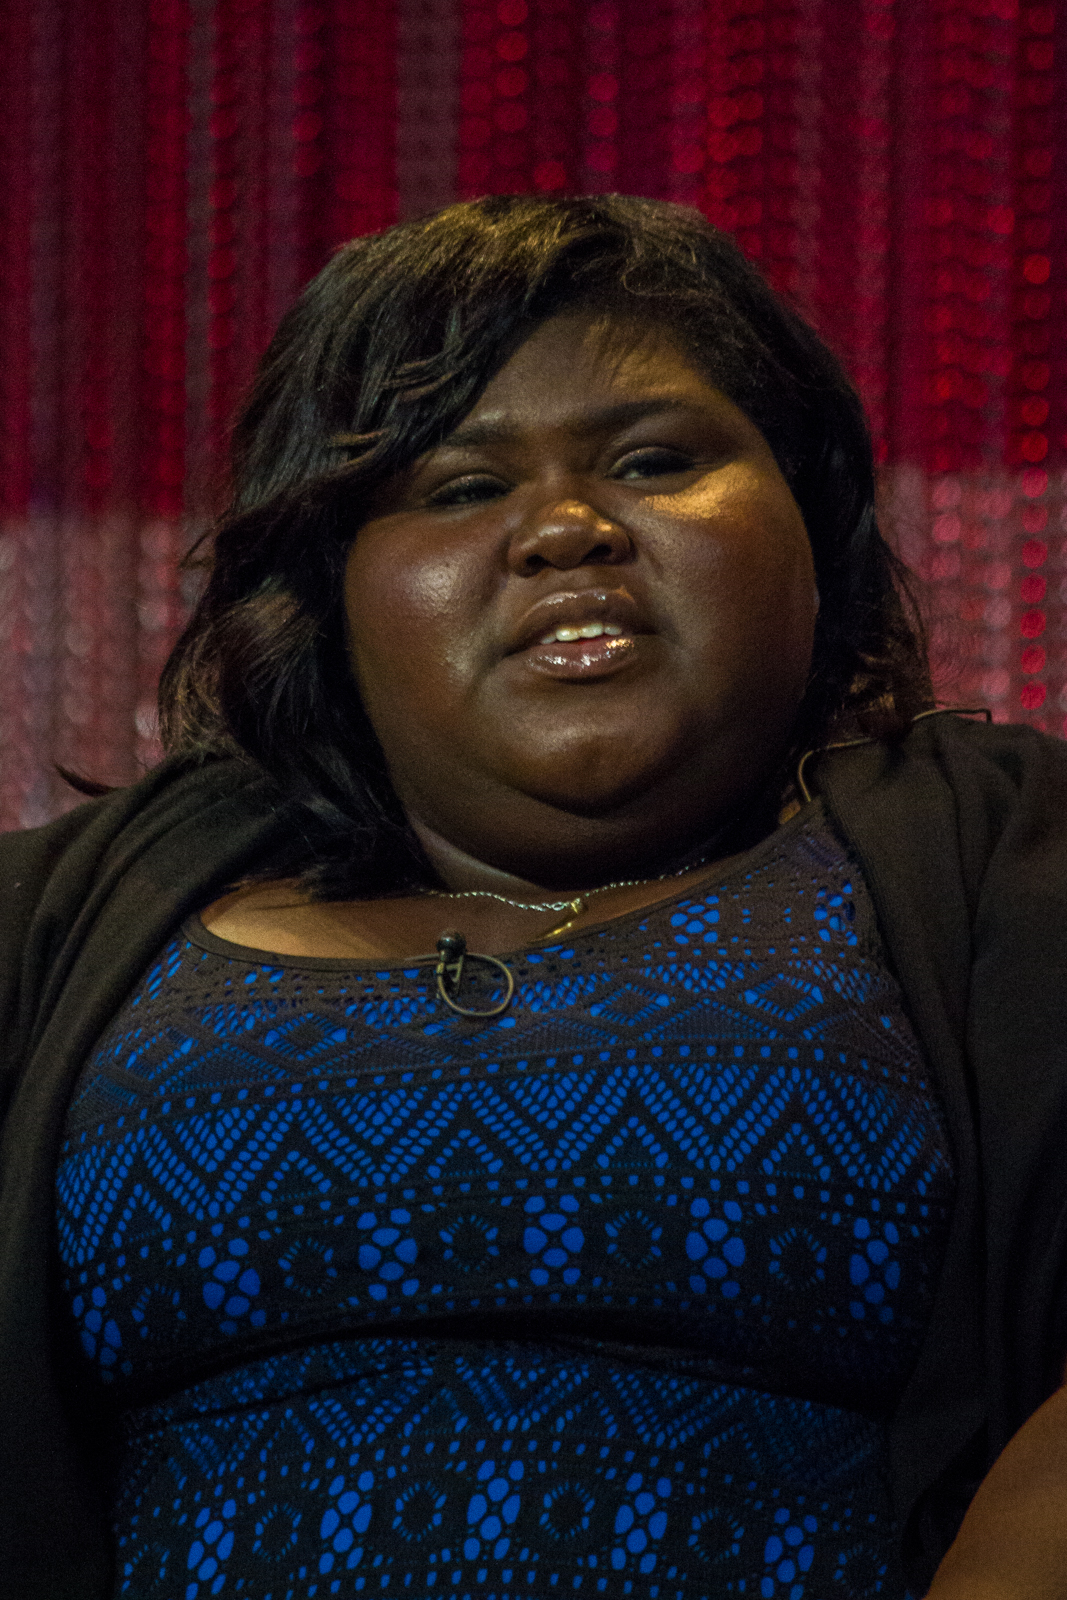 The 35-year old daughter of father Ibnou Sidibe and mother Alice Tan Ridley Gabourey Sidibe in 2018 photo. Gabourey Sidibe earned a  million dollar salary - leaving the net worth at 2 million in 2018